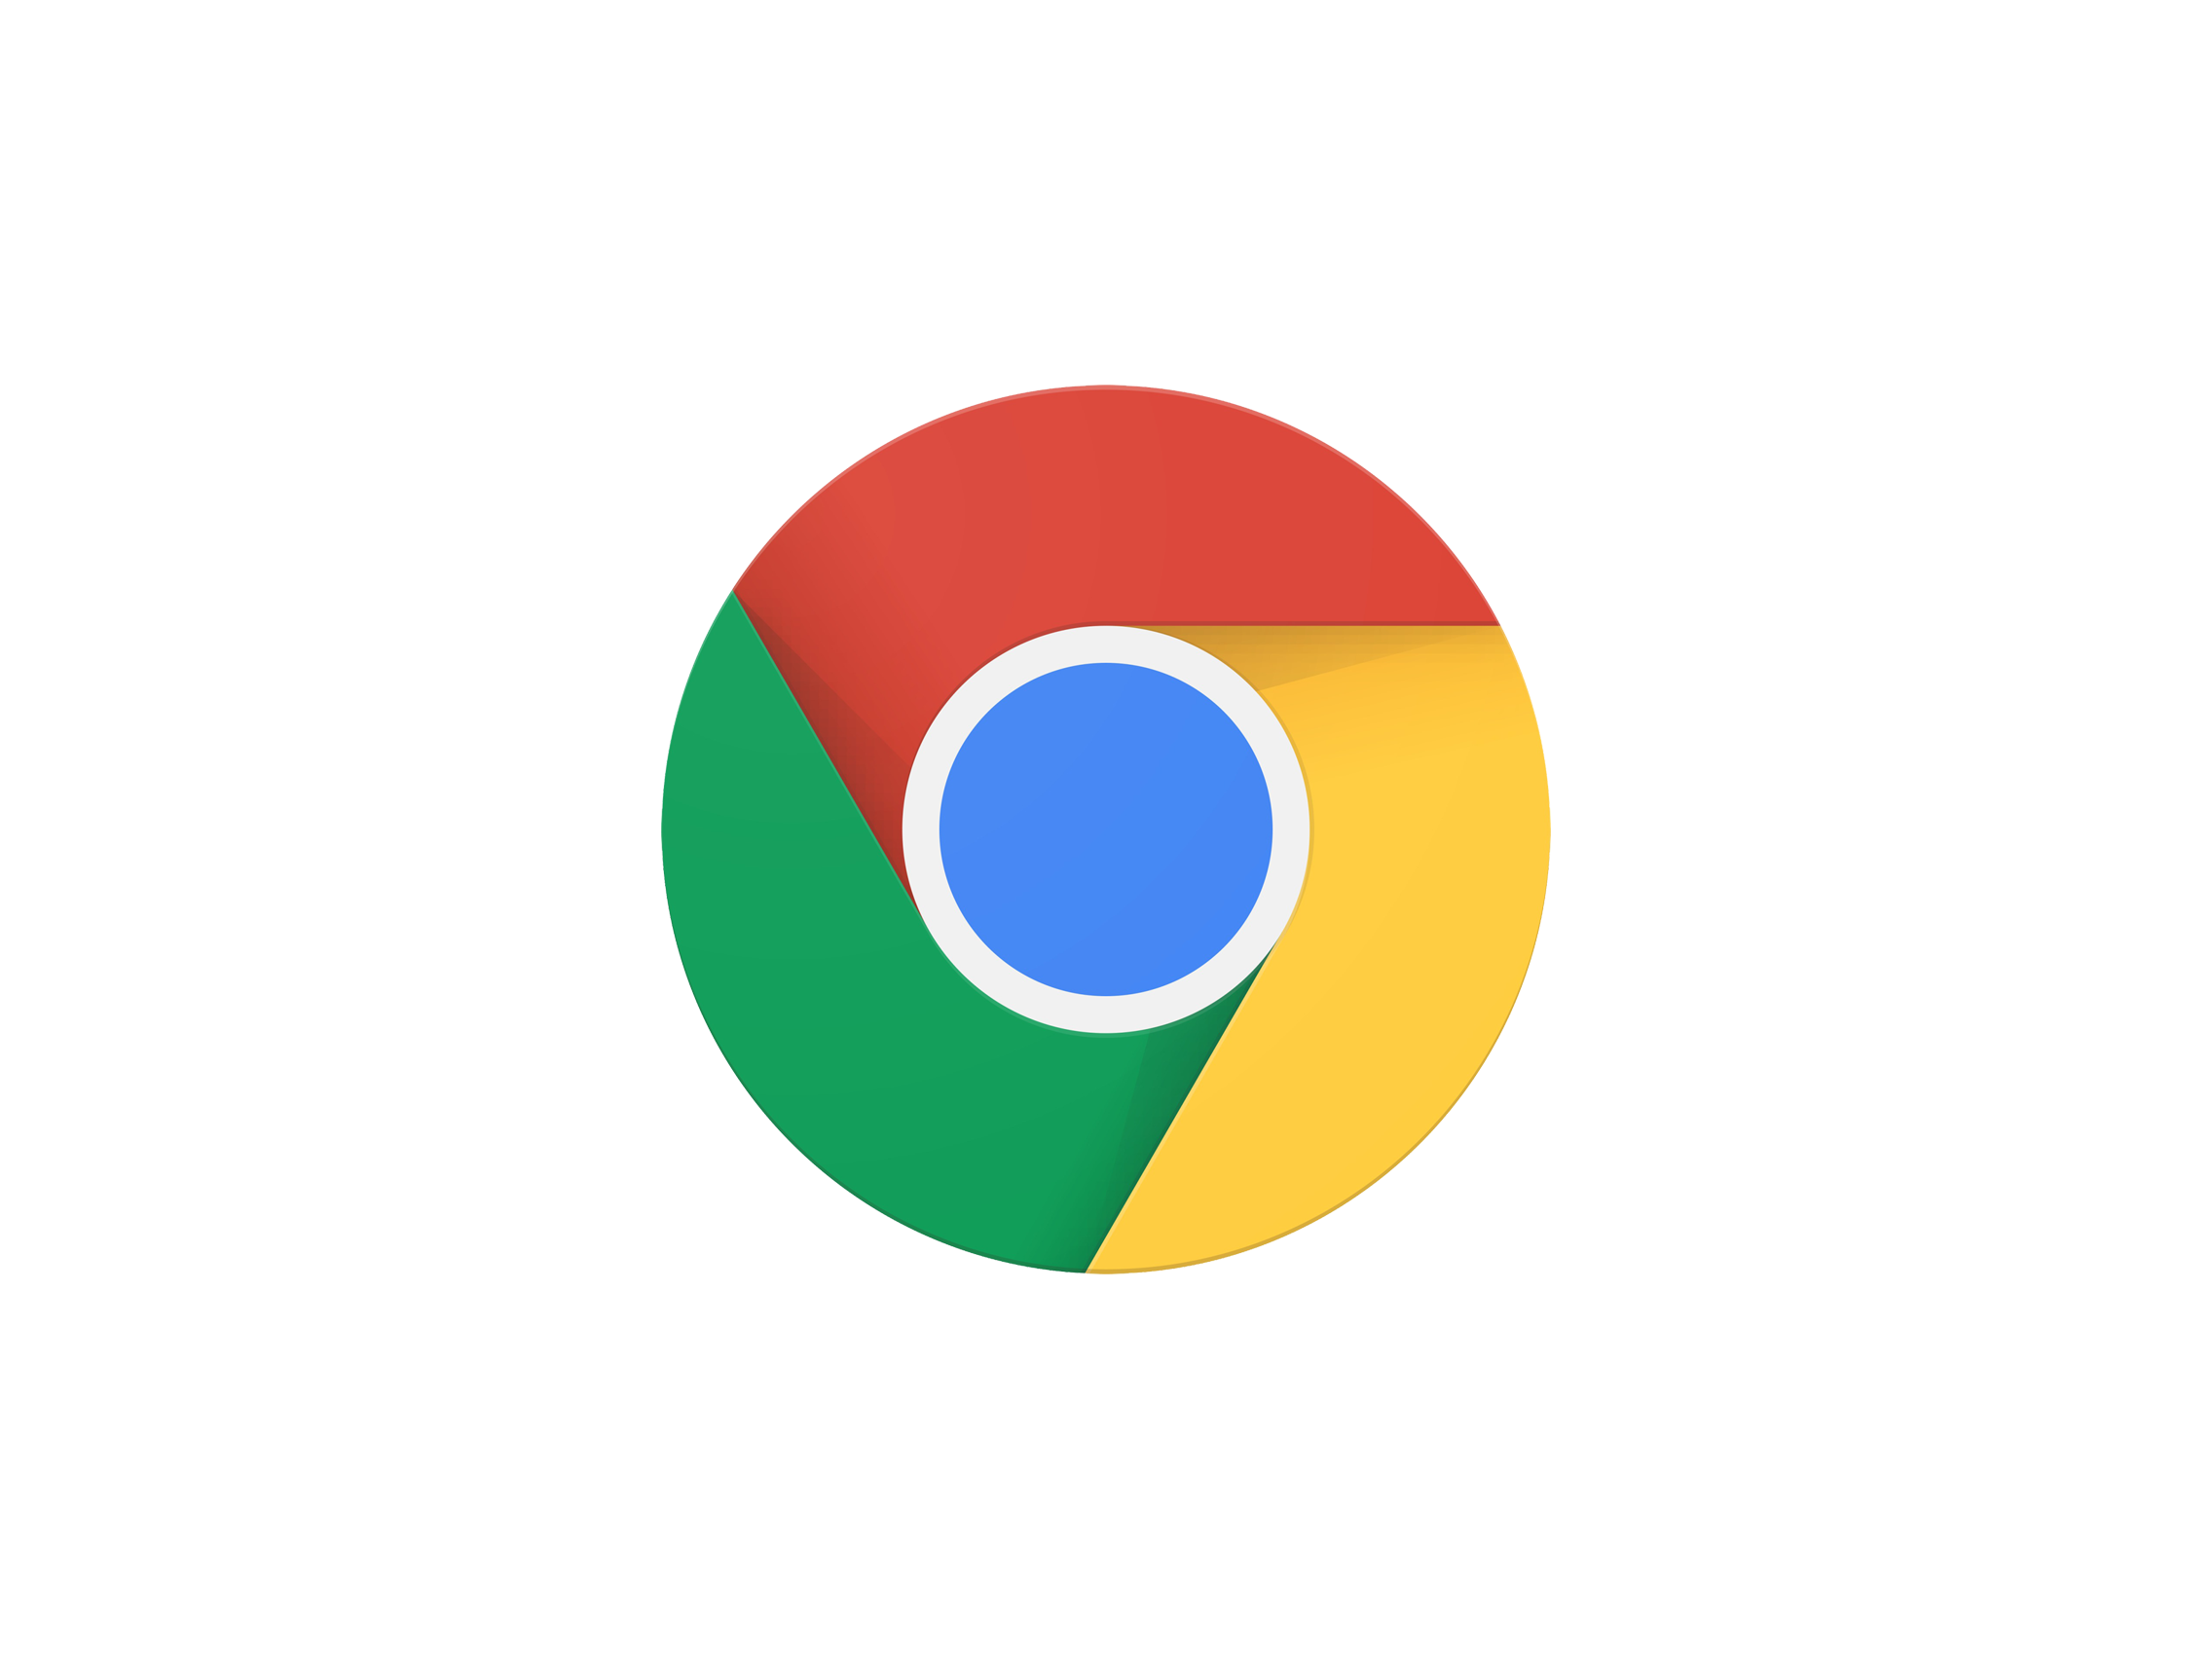 google chrome logo 2 logo brands for fr 918419 png images pngio logo brands for fr 918419 png images